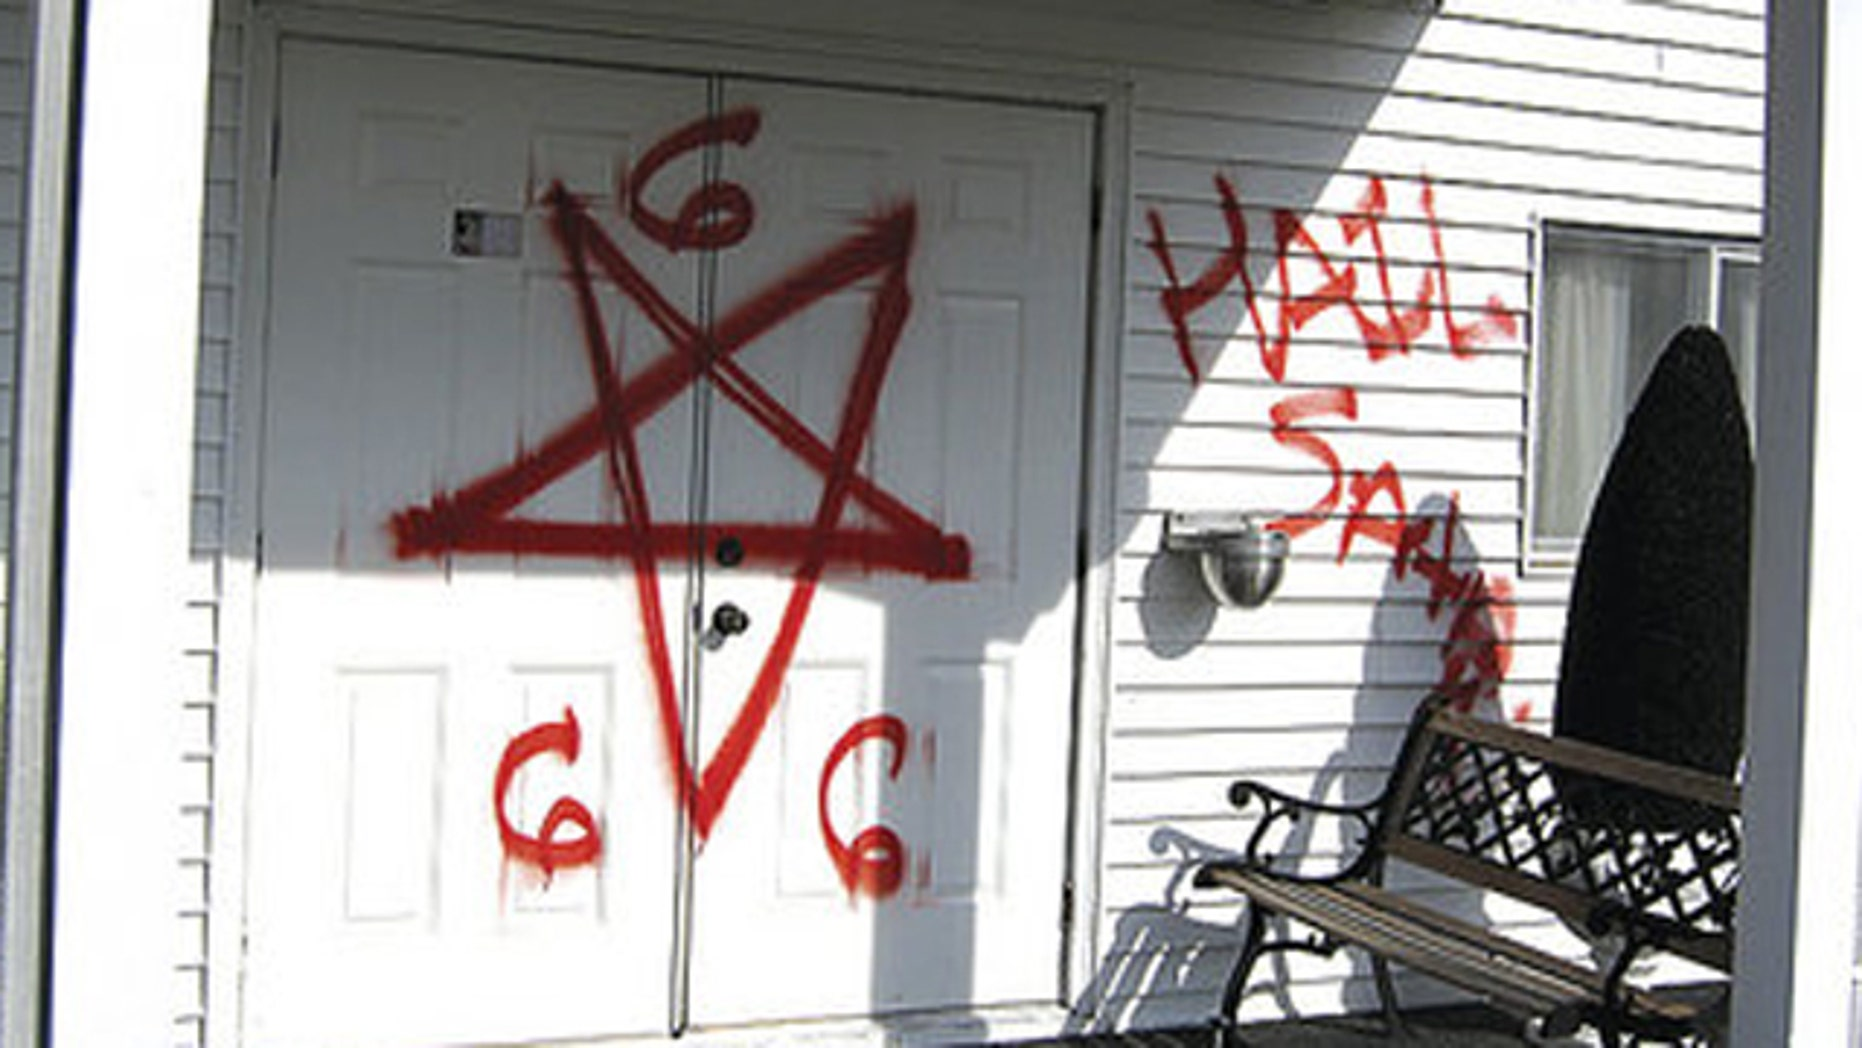 """Bright red spray-paint was used to write """"Hail Satan"""" and """"666""""outside walls of Gospel Light Missionary Baptist Church."""